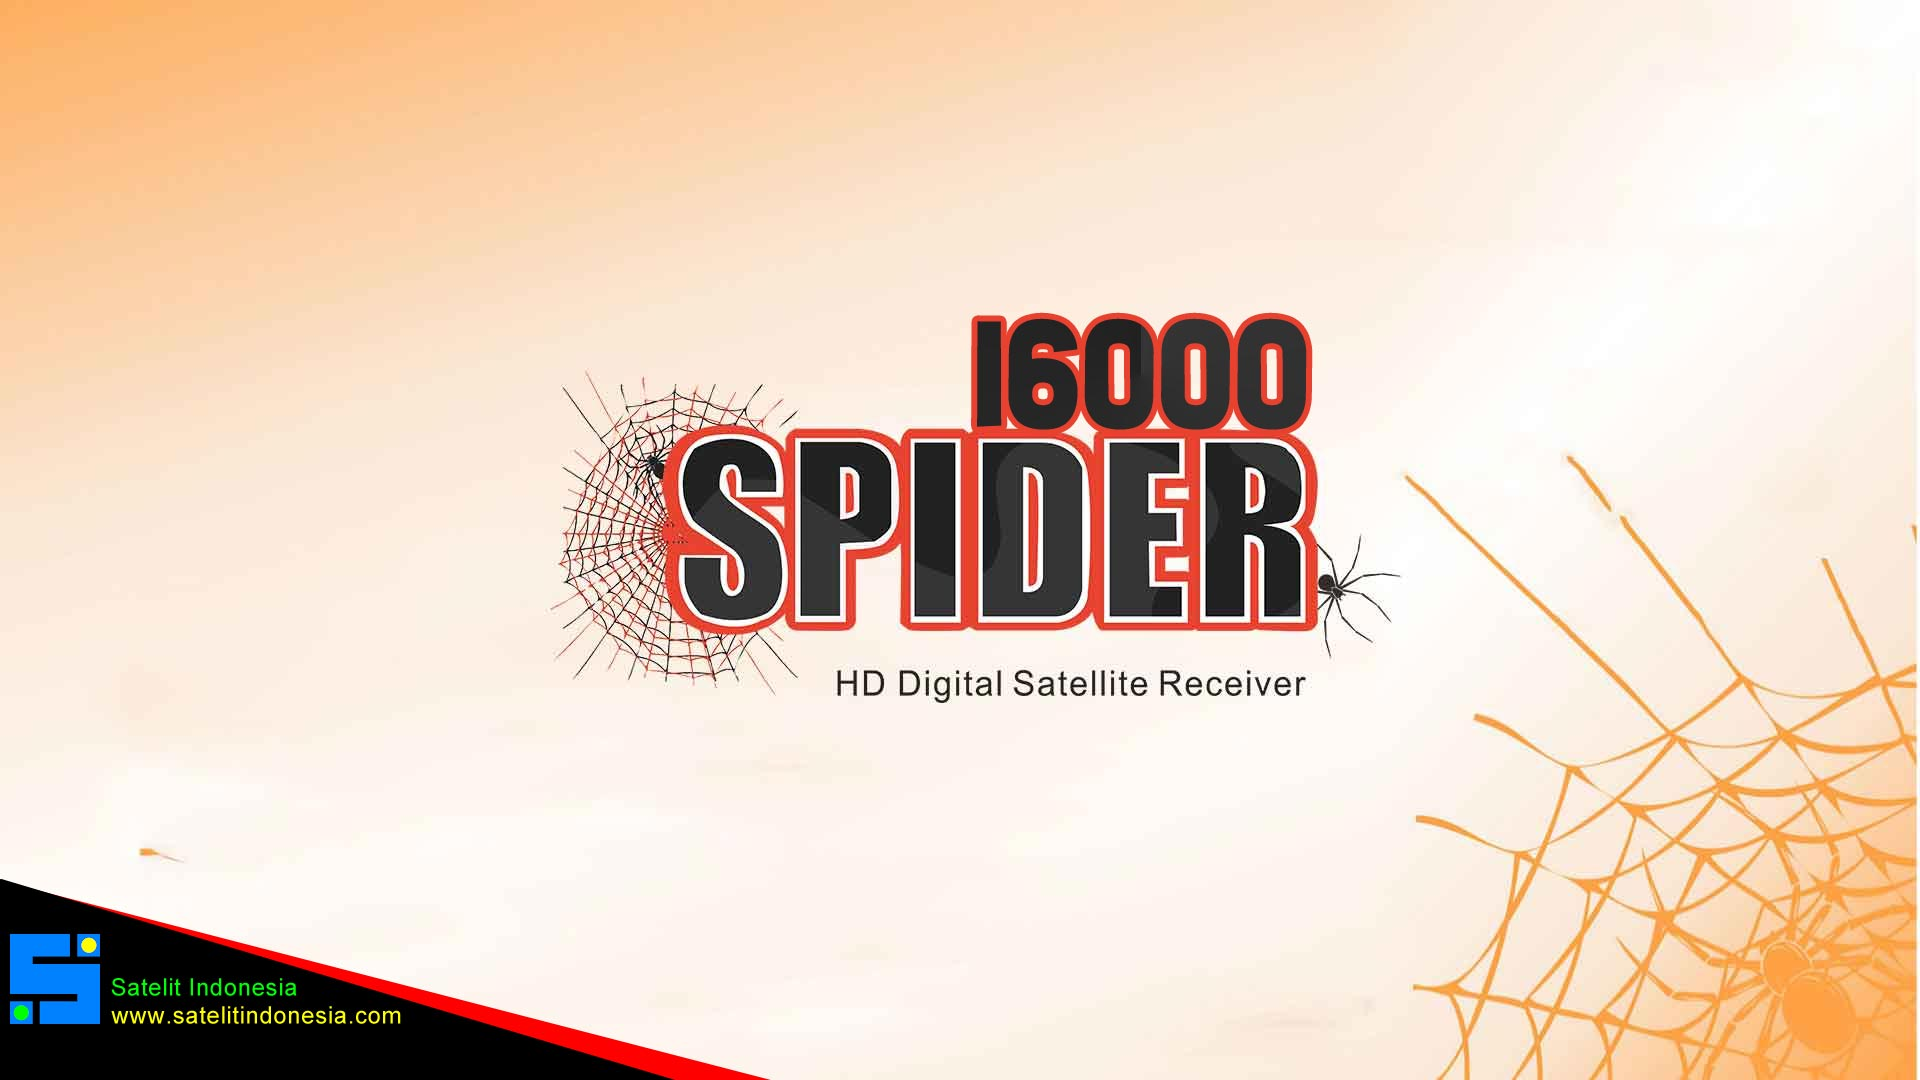 Software Spider I6000 New Update Firmware Receiver